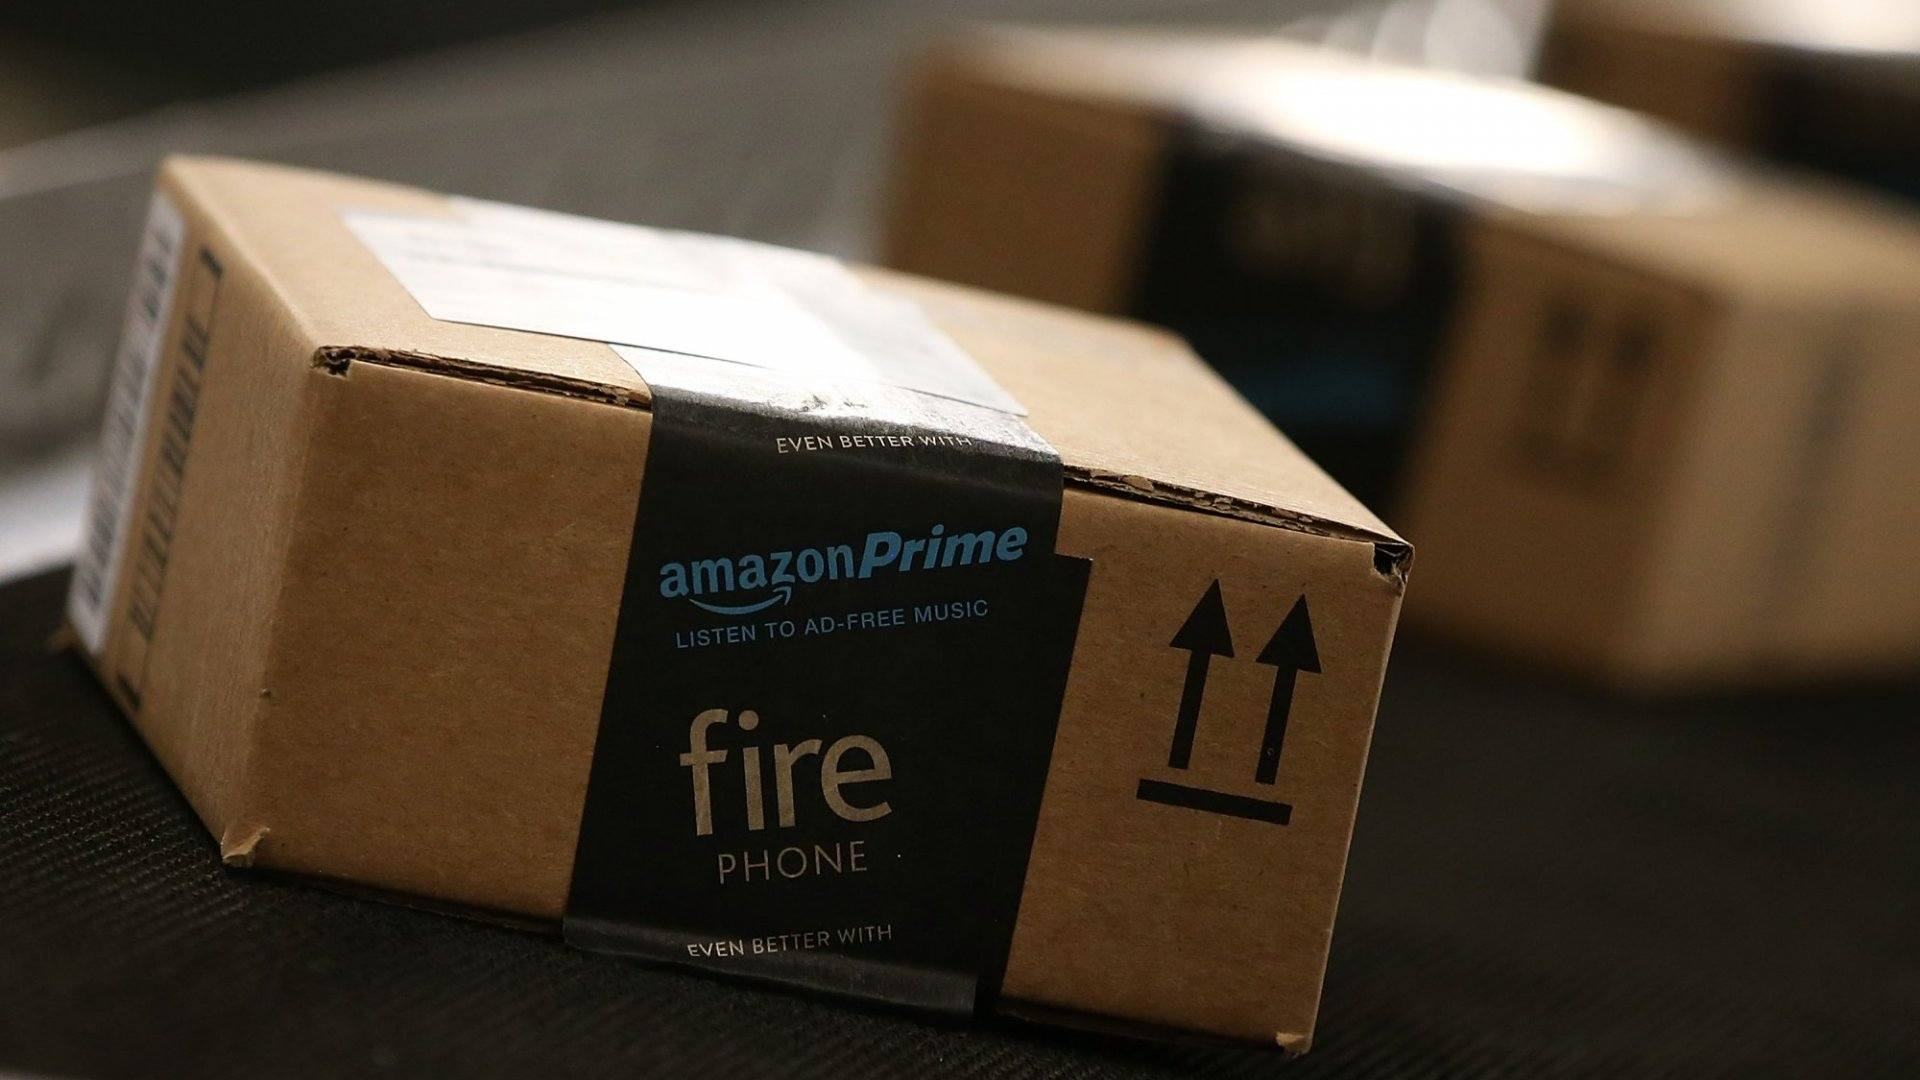 Amazon's Website Crashed Just as Prime Day Began, Costing Possibly Millions in Sales